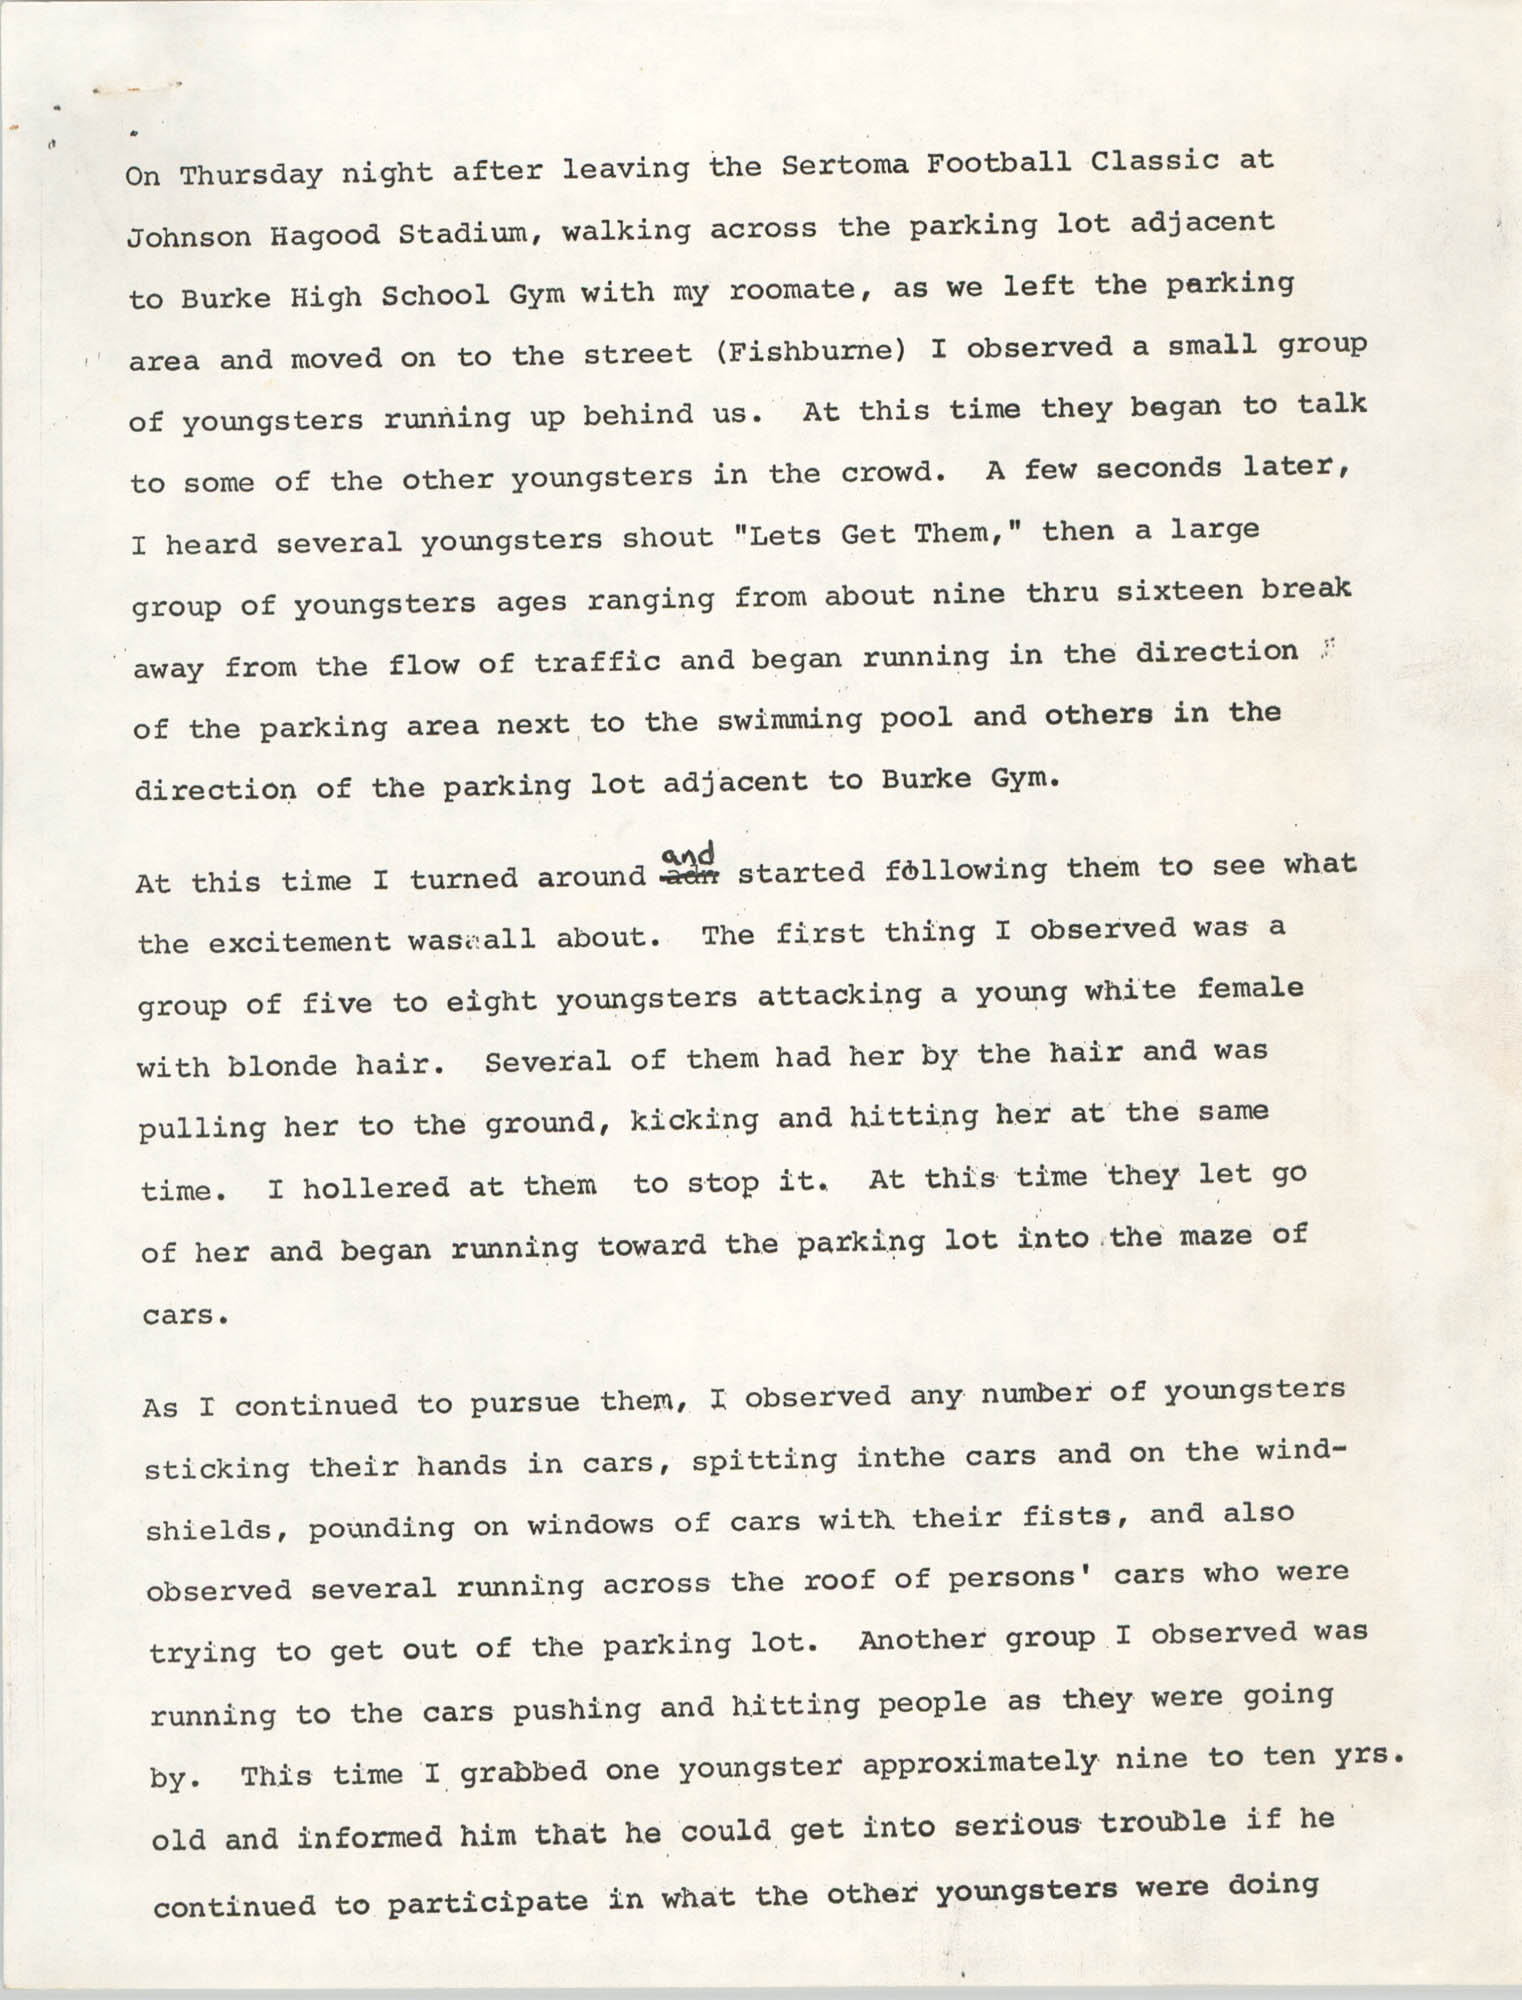 Statement by Leroy Simmons, August 25, 1977